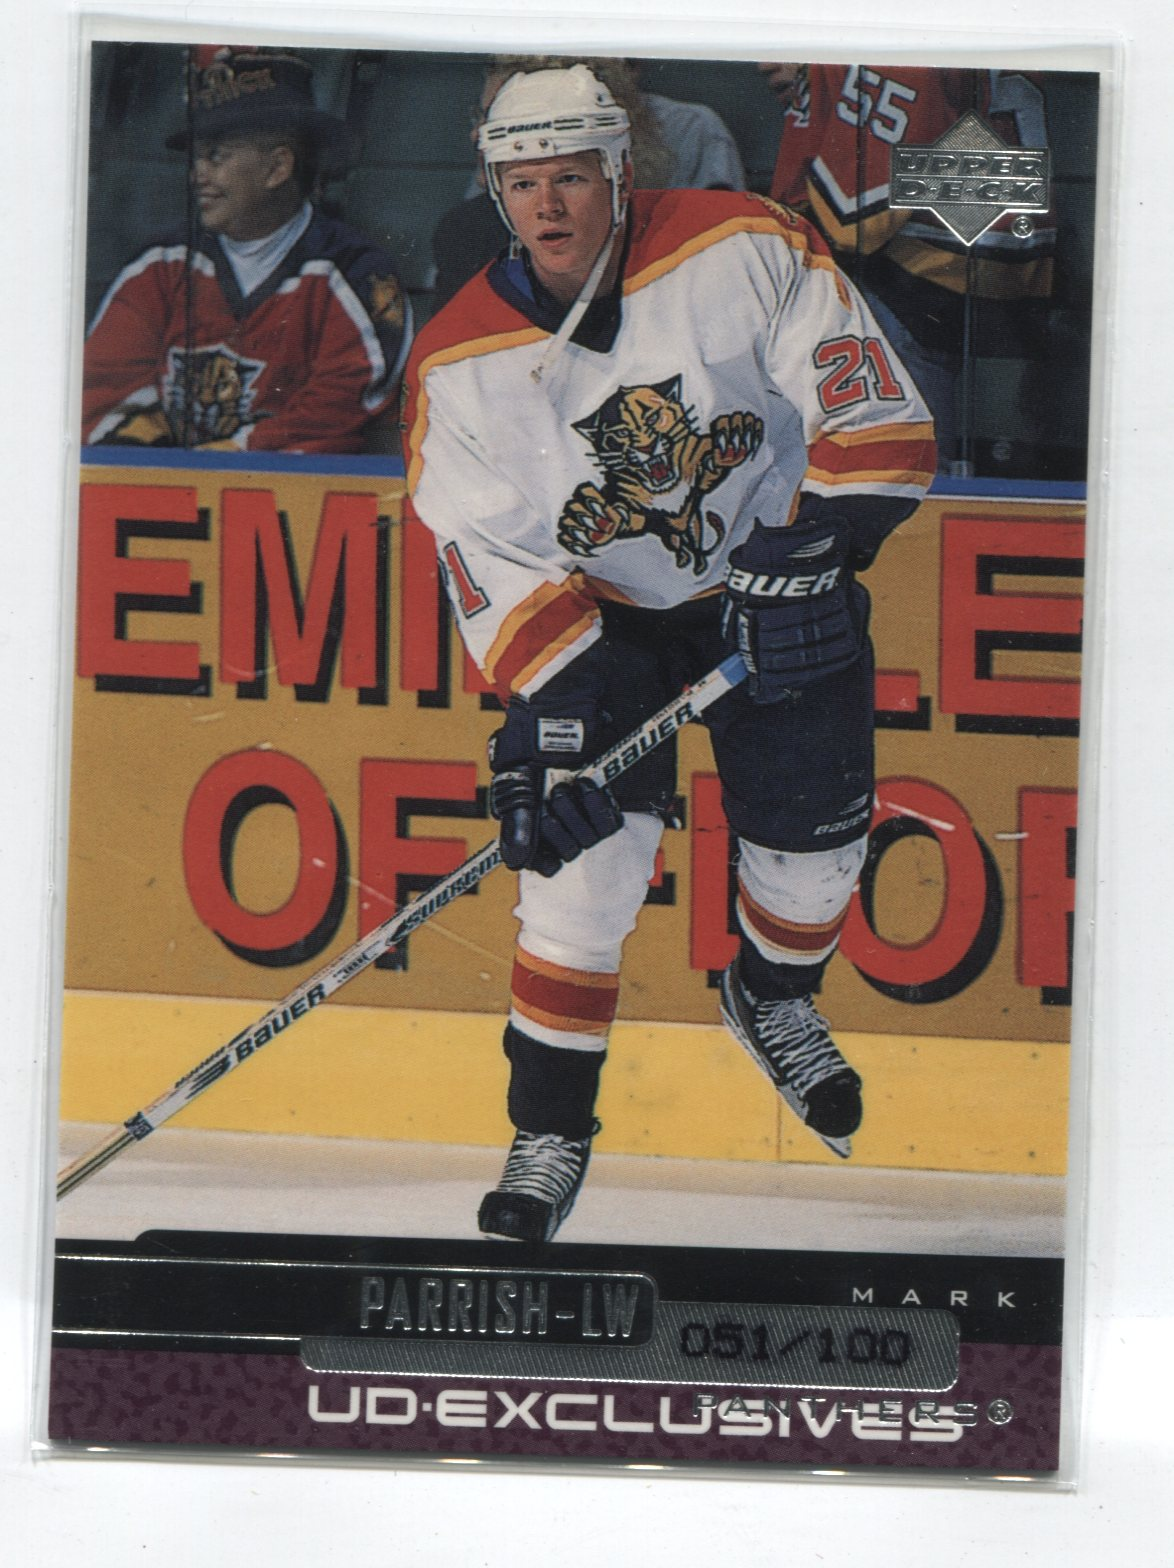 1999-00 Upper Deck Exclusives #58 Mark Parrish #/100 | Eastridge Sports Cards